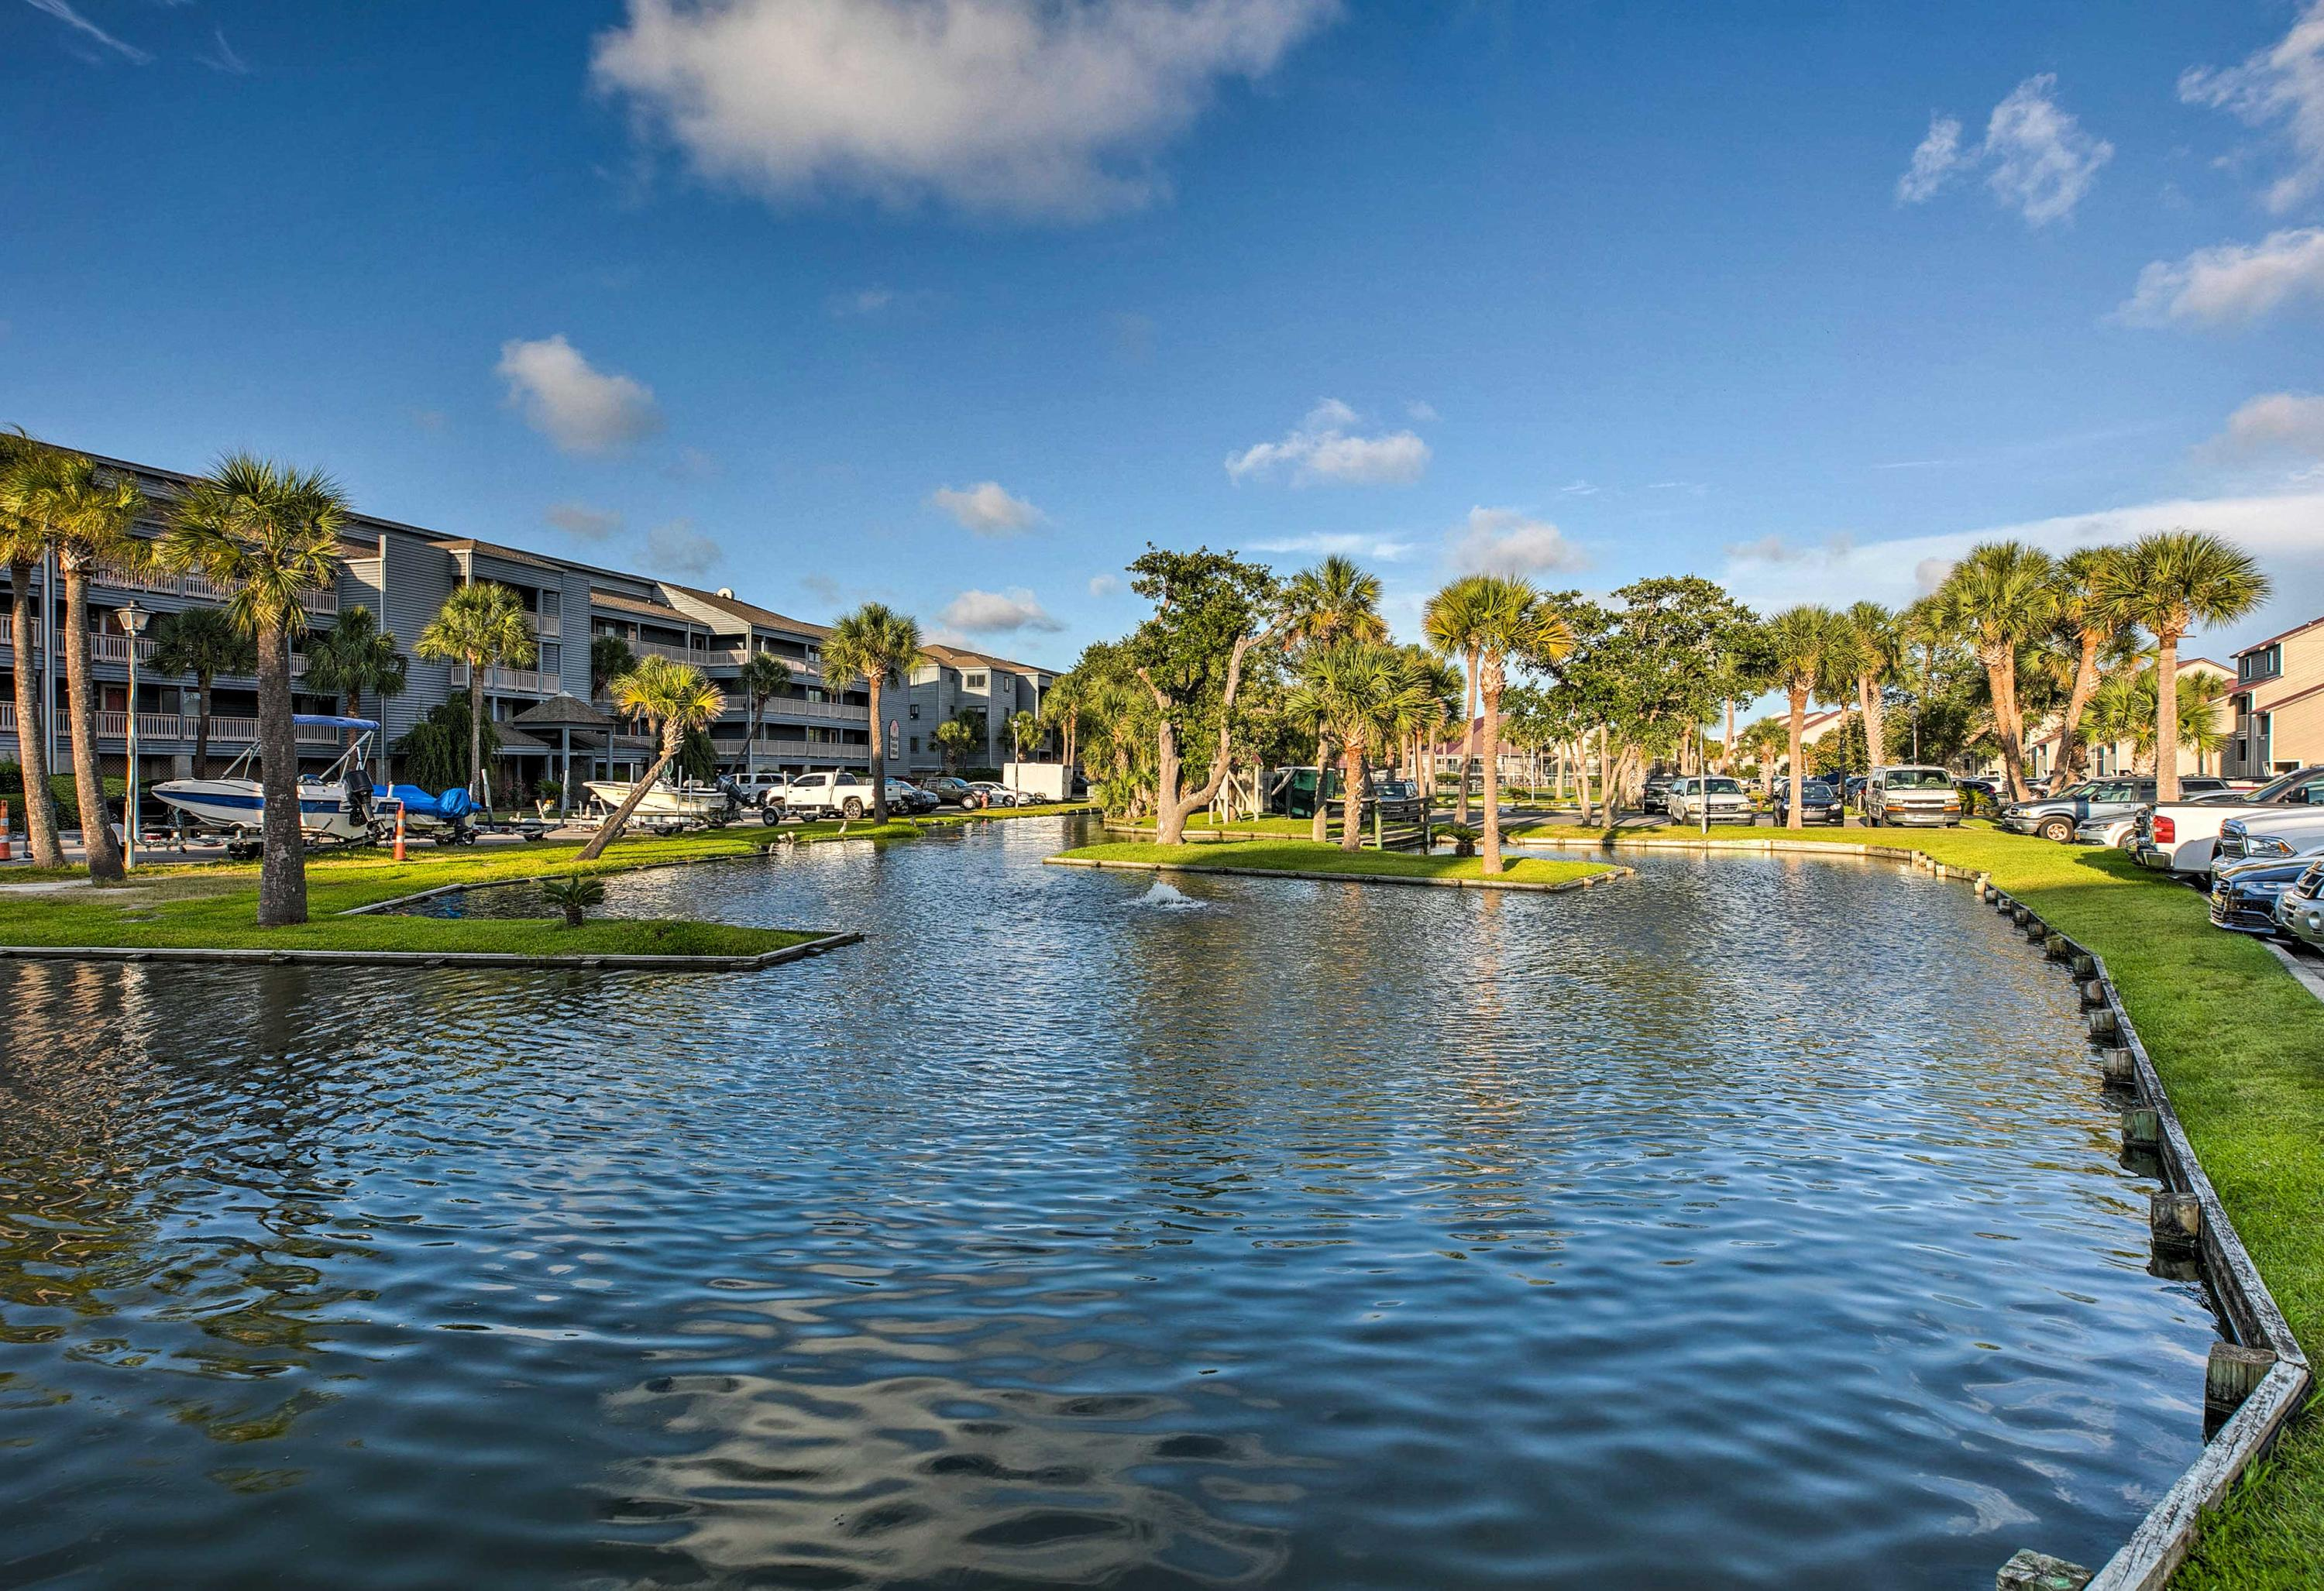 Mariners Cay Homes For Sale - 93 Mariners Cay, Folly Beach, SC - 4